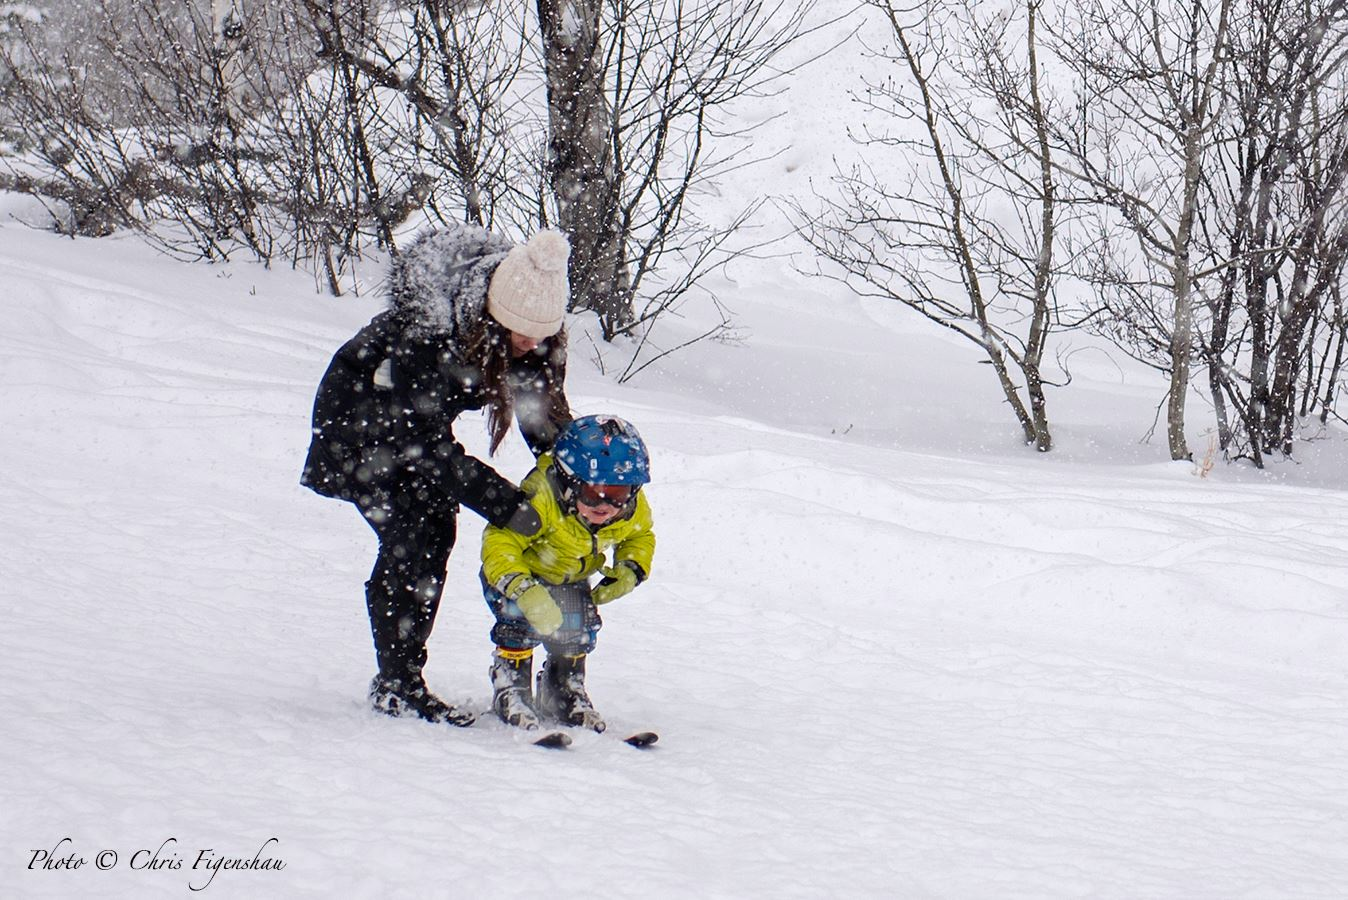 Smiles and Heavy Snow at JH Today. Image: Chris Figenshau